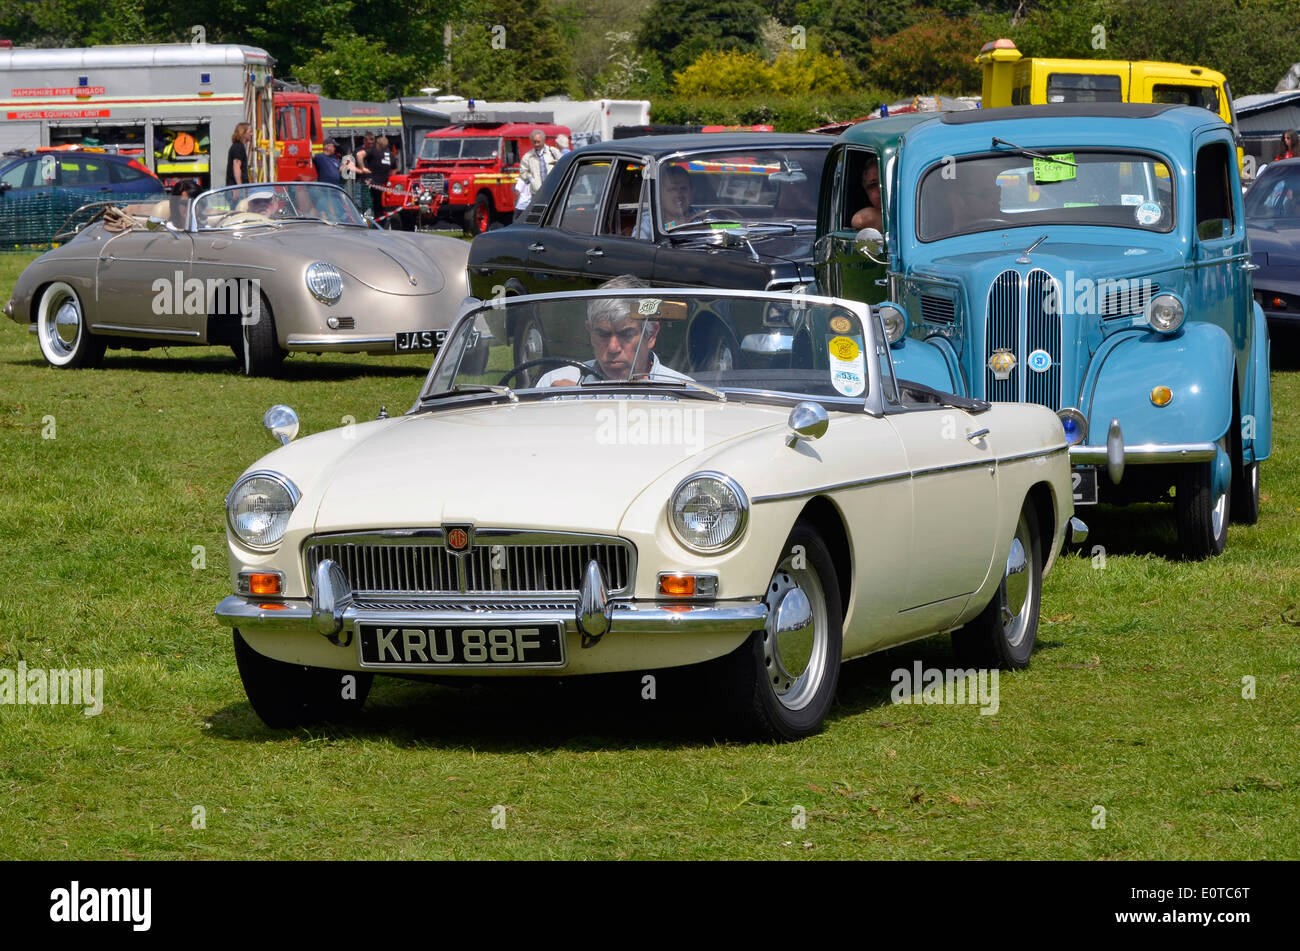 Classic cars line up for the parade ring at a classic vehicle show - 1967 MGB Ford Popular Ford Cortina Mk2 and early Porsche. & Classic cars line up for the parade ring at a classic vehicle show ... markmcfarlin.com